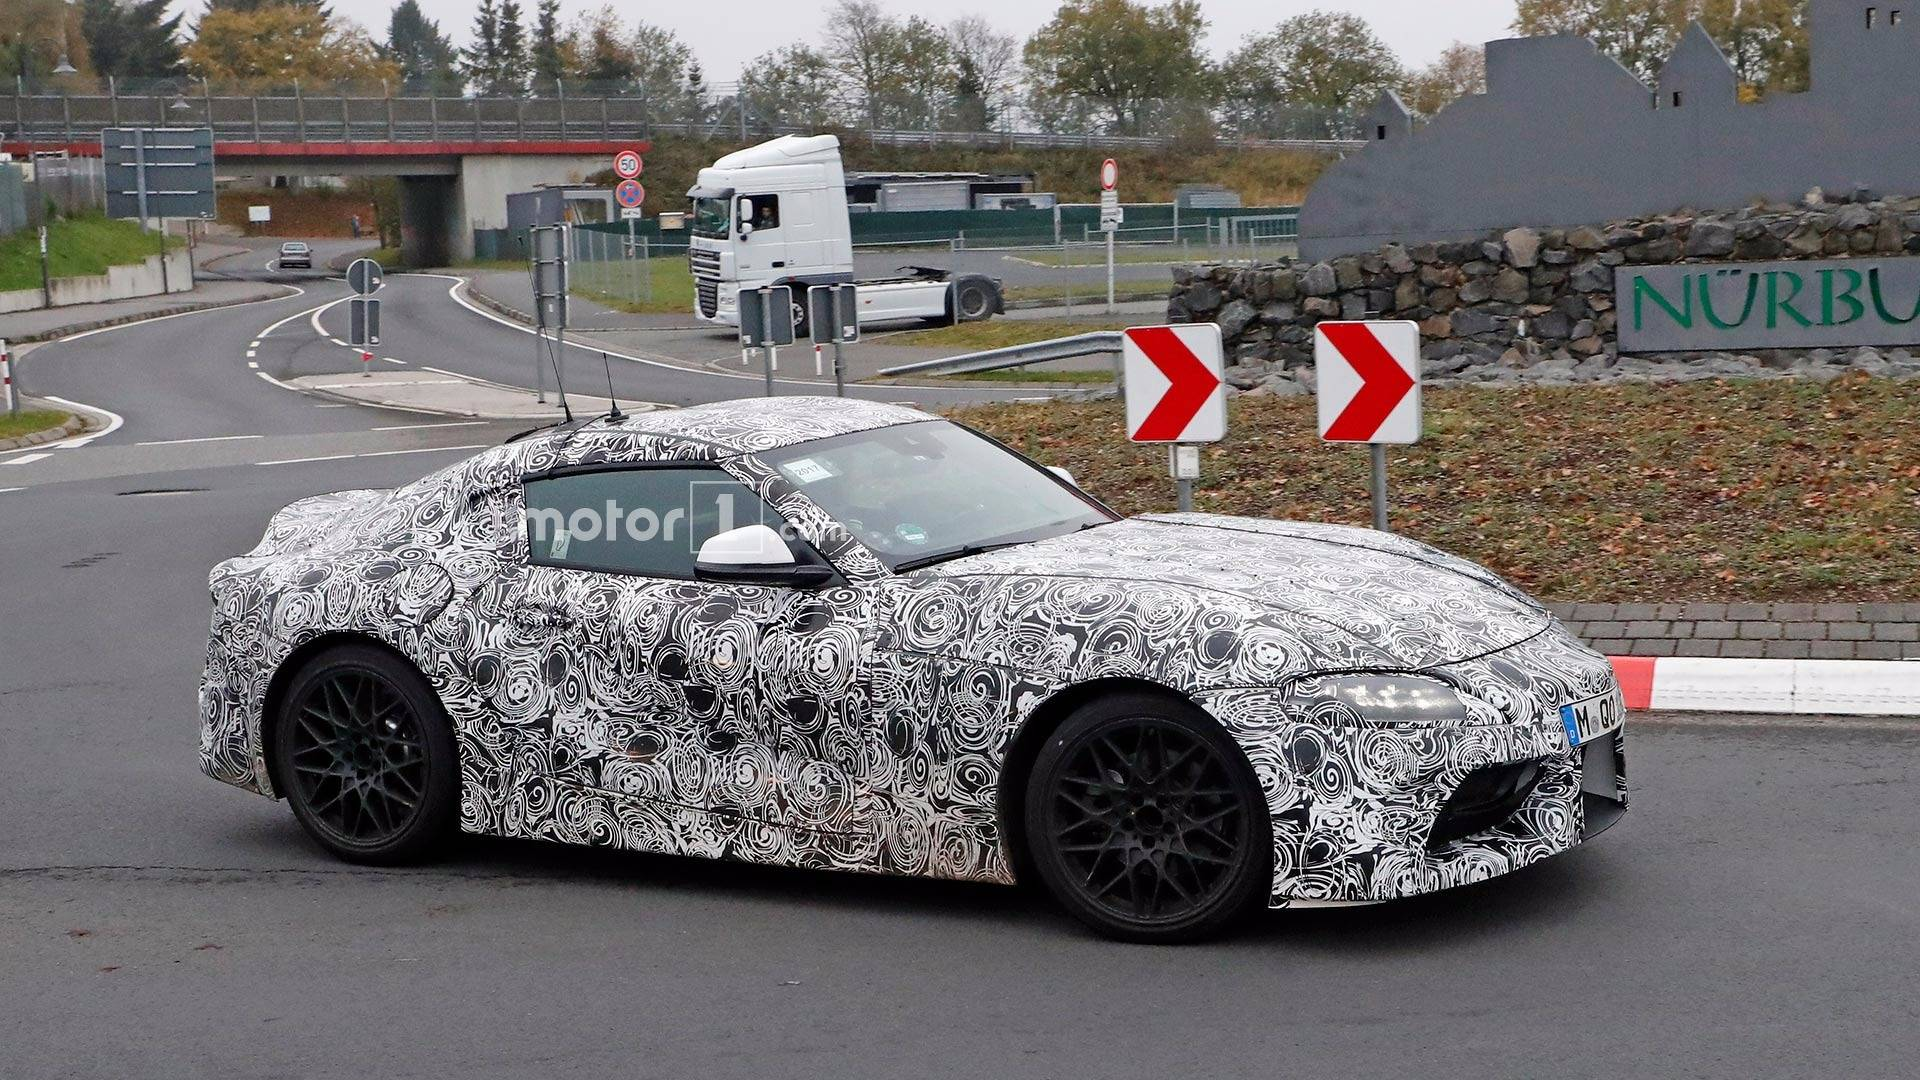 2018 Toyota Supra >> Leaked Specs Allege 2018 Supra Has 335 Hp 8 Speed Automatic